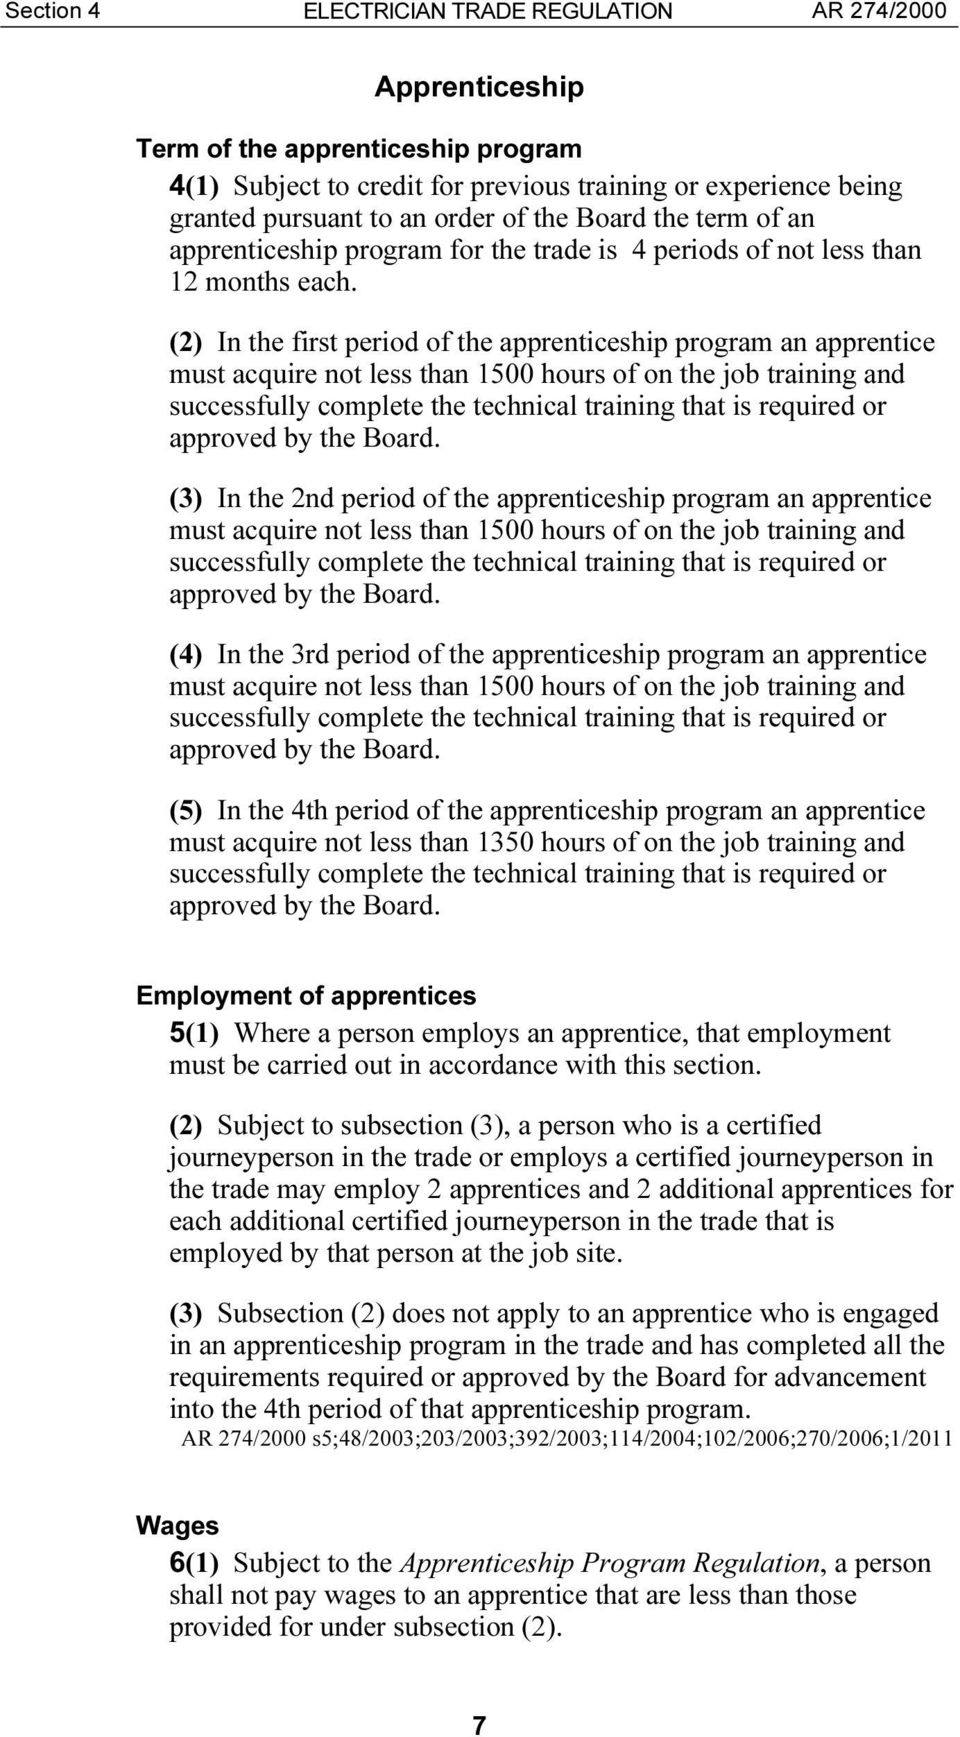 (2) In the first period of the apprenticeship program an apprentice must acquire not less than 1500 hours of on the job training and successfully complete the technical training that is required or